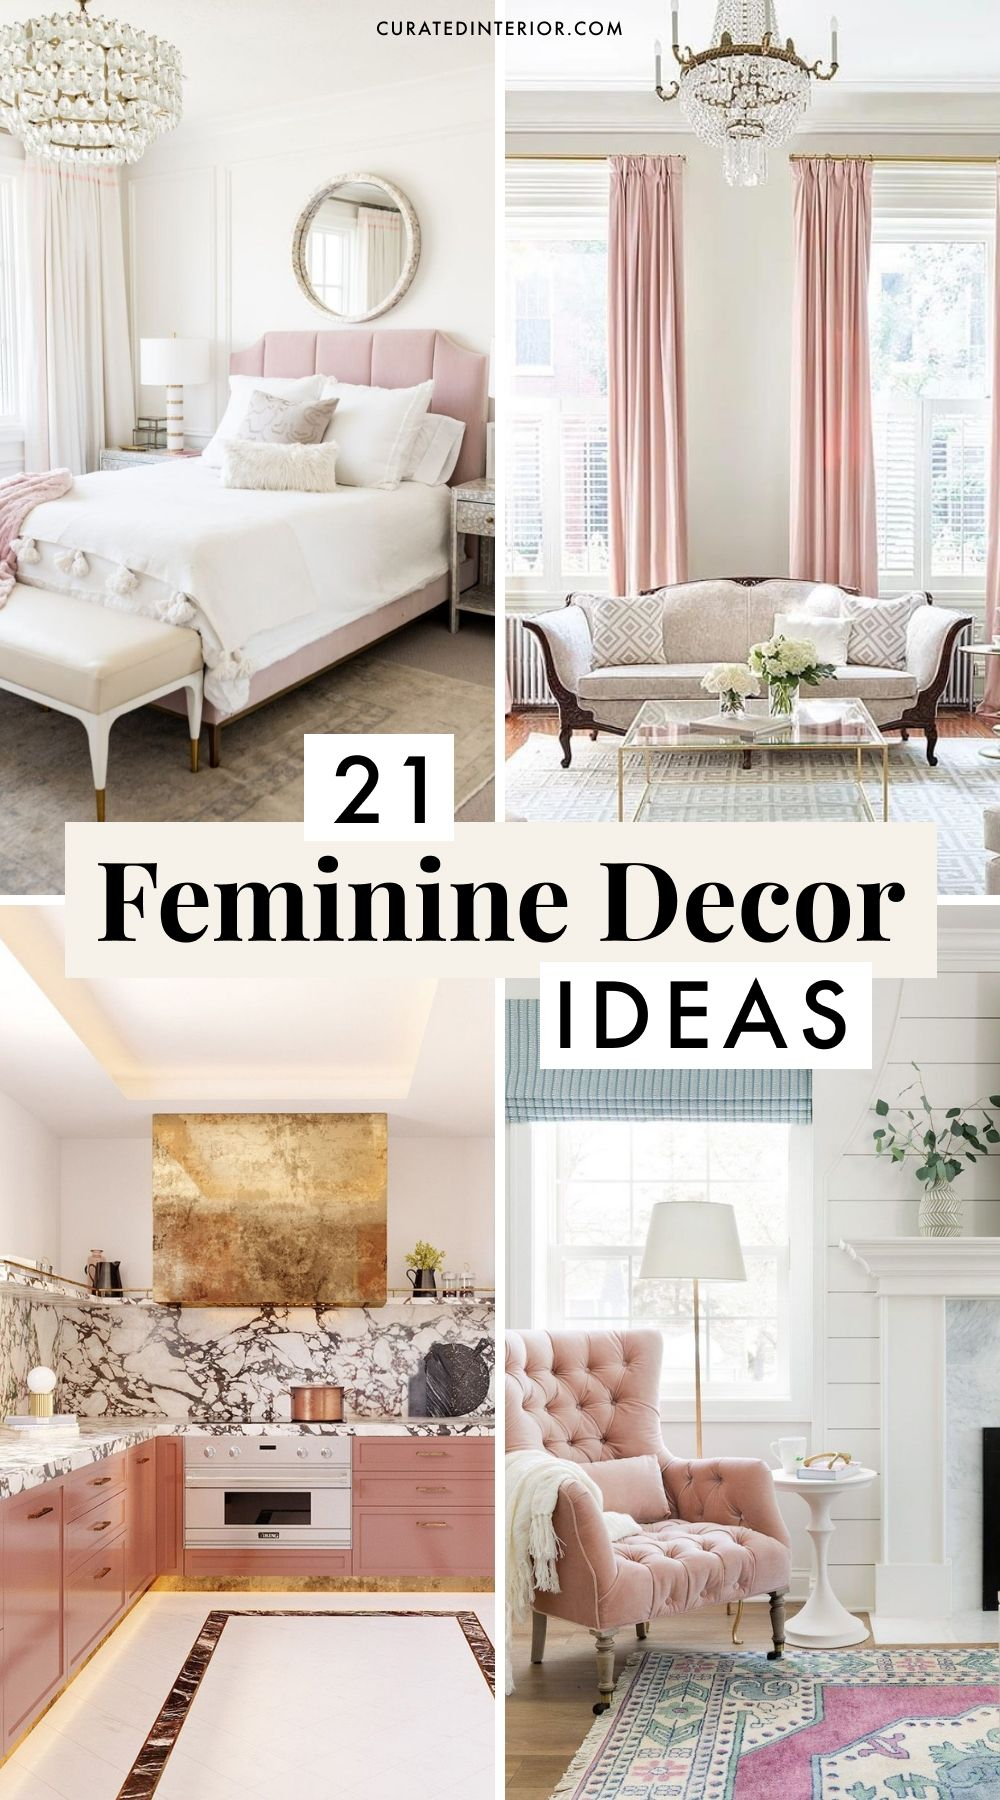 21 Feminine Decor Ideas